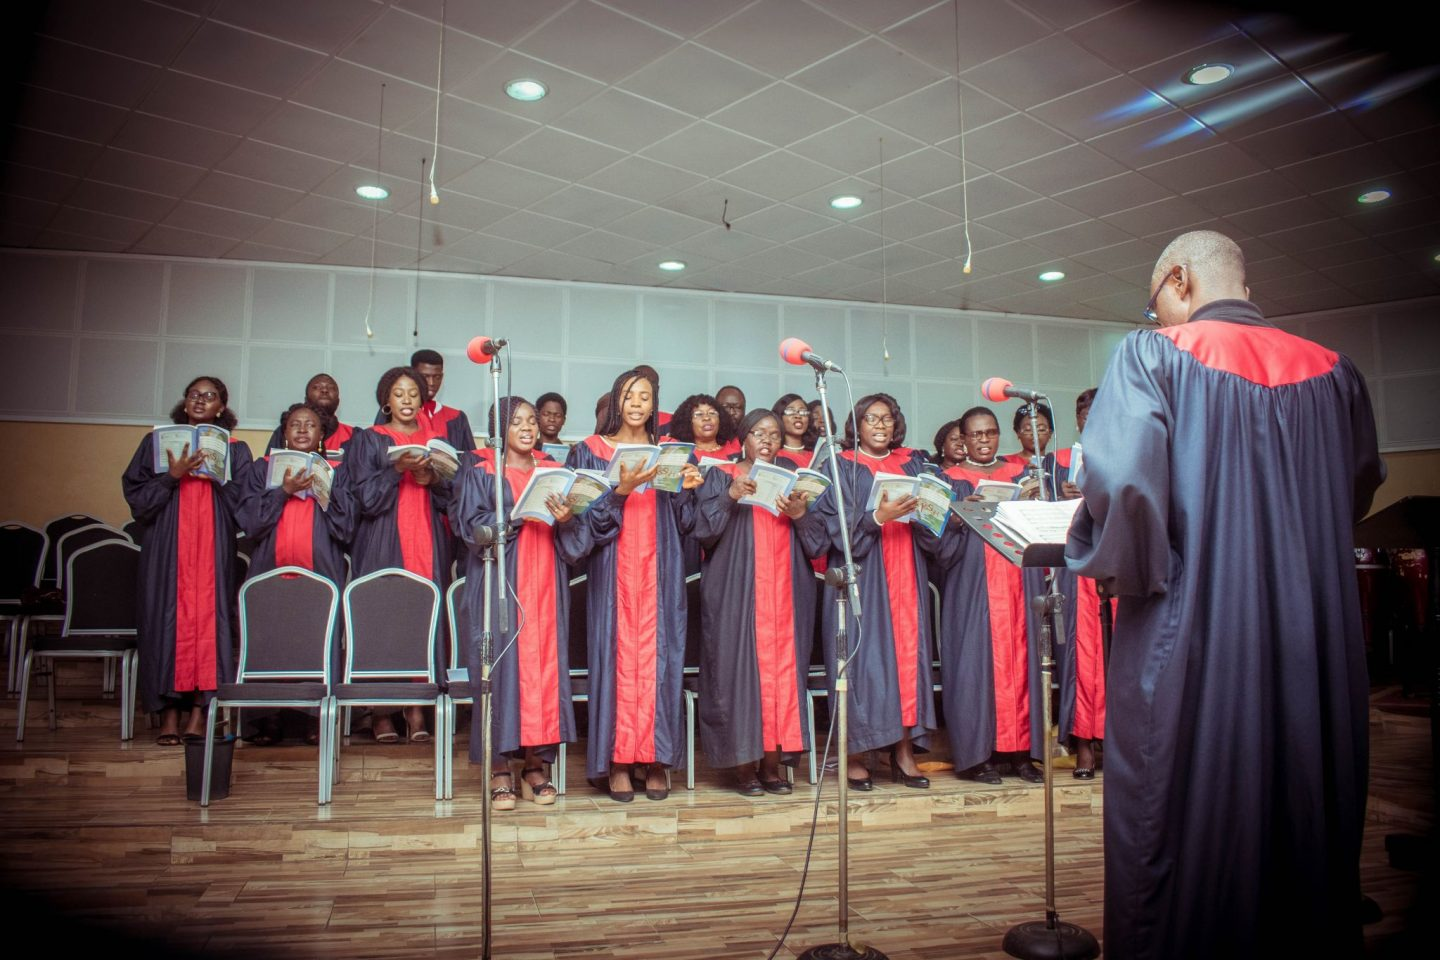 6 INTERESTING FACTS ABOUT CHURCH CHOIR ROBES THAT YOU SHOULD KNOW